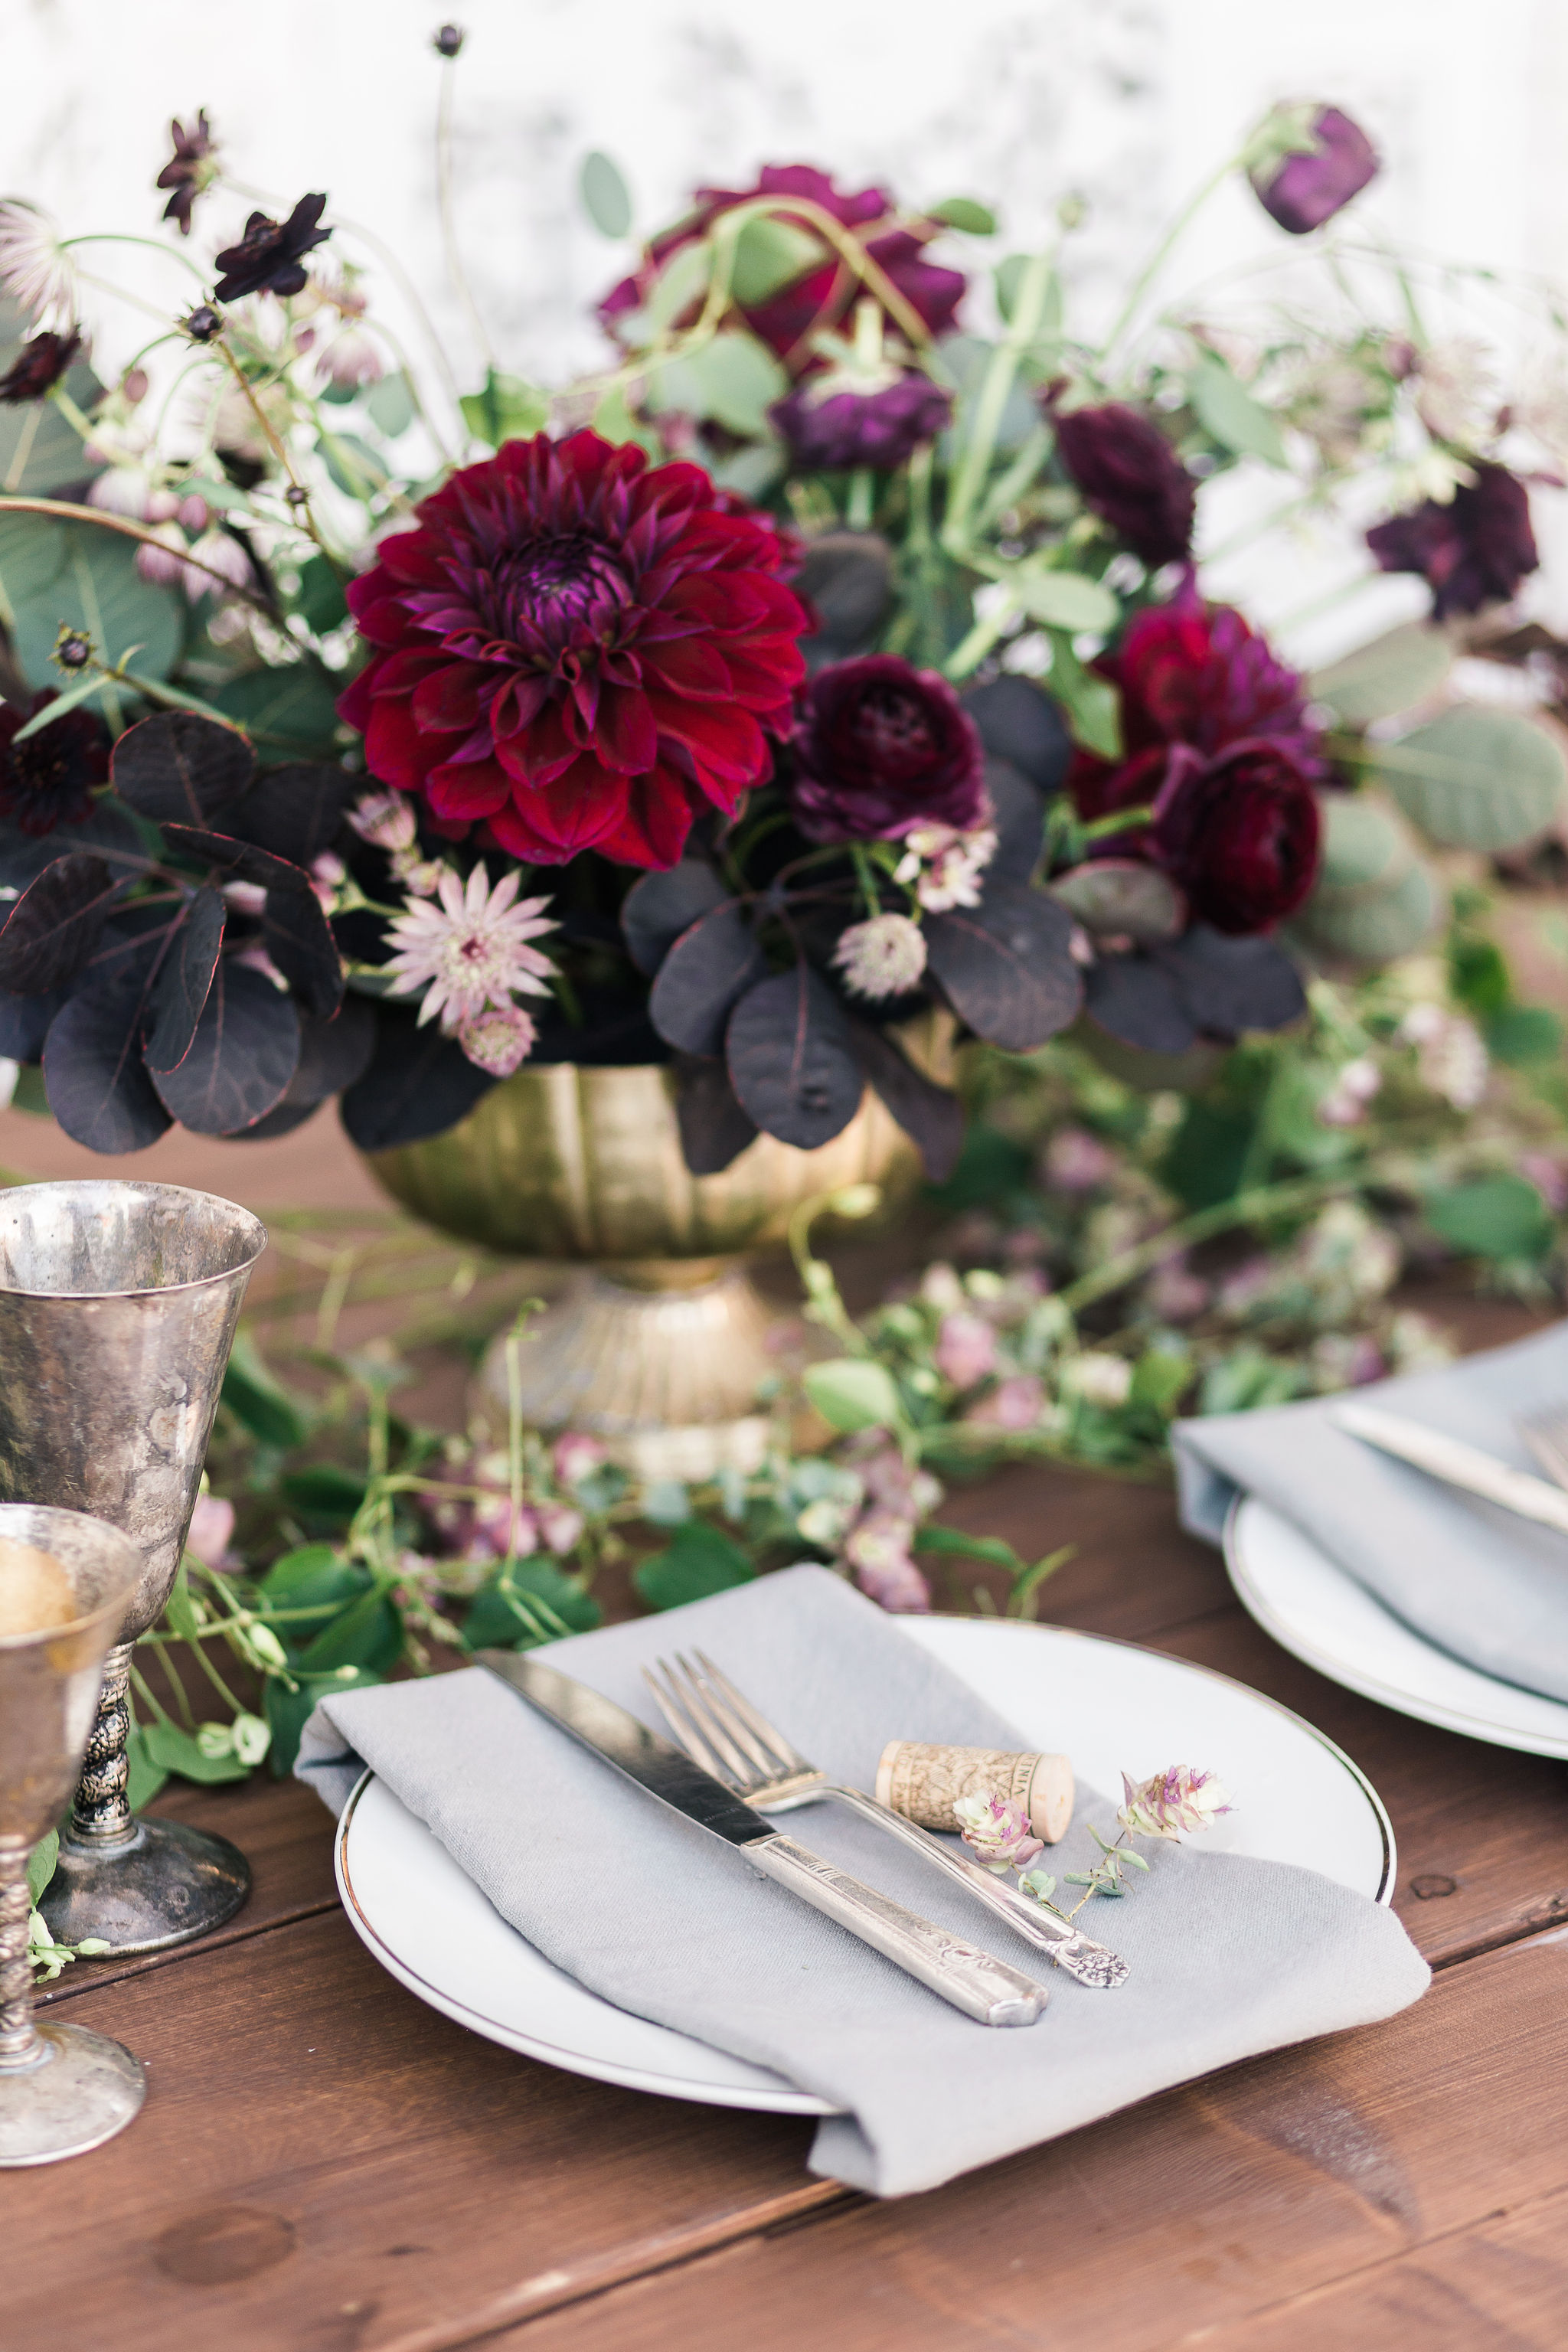 Georgia-Ruth-Photography-Flat-Lays-Table-Details-136.jpg